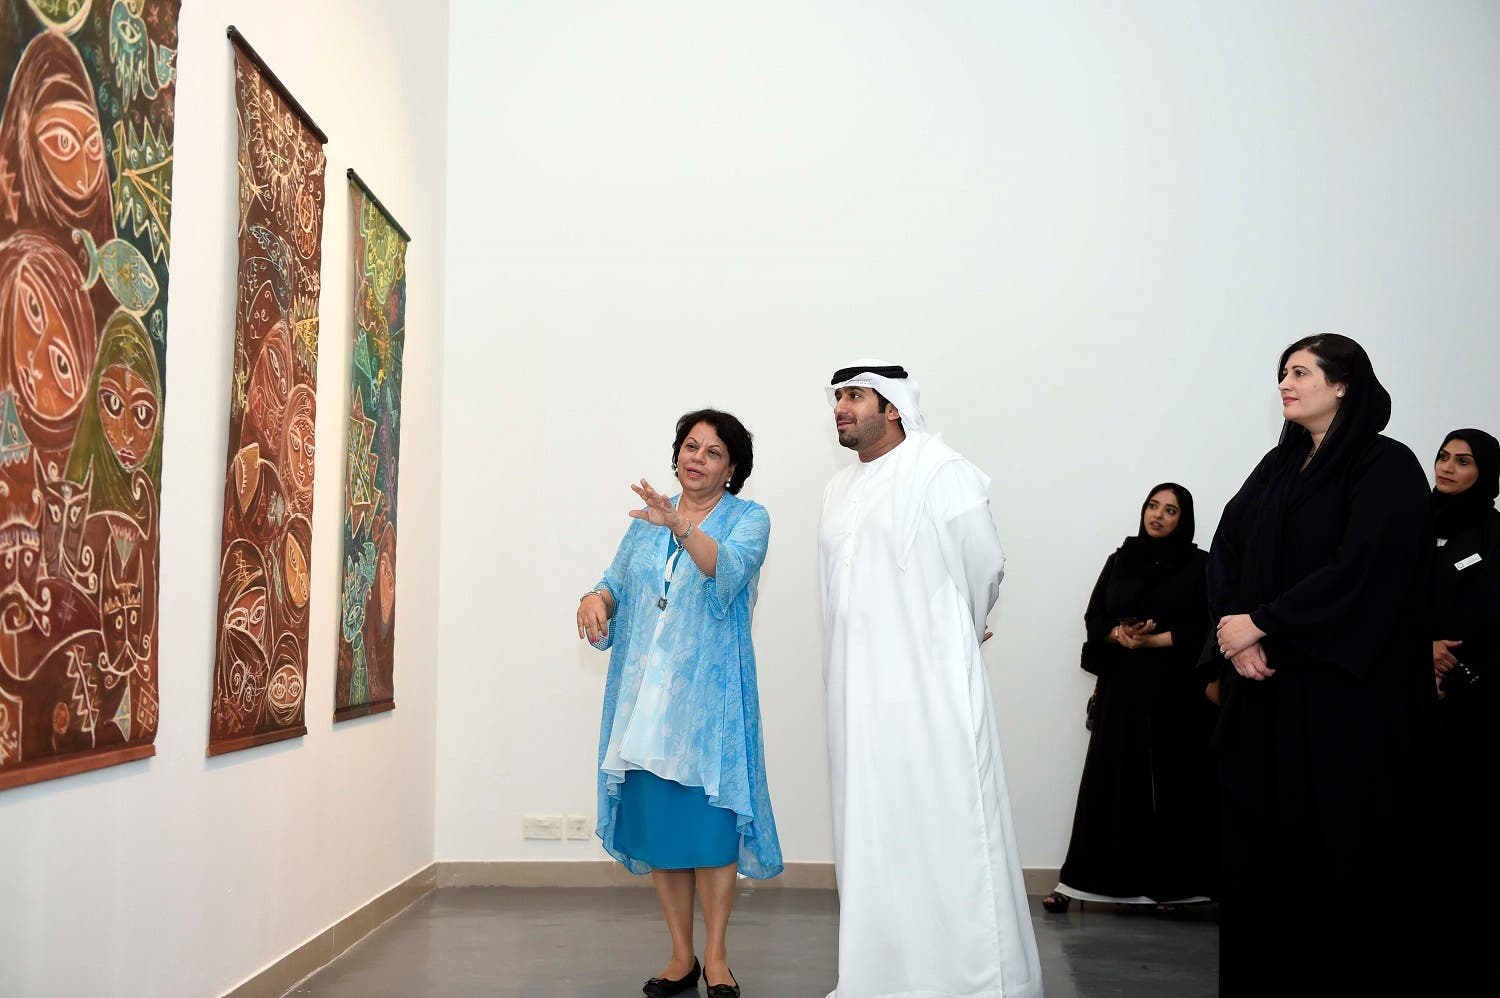 Artist Thuraya Al Baqsami explaining her works during the inauguration of the exhibition to the VIP guests. (Supplied)